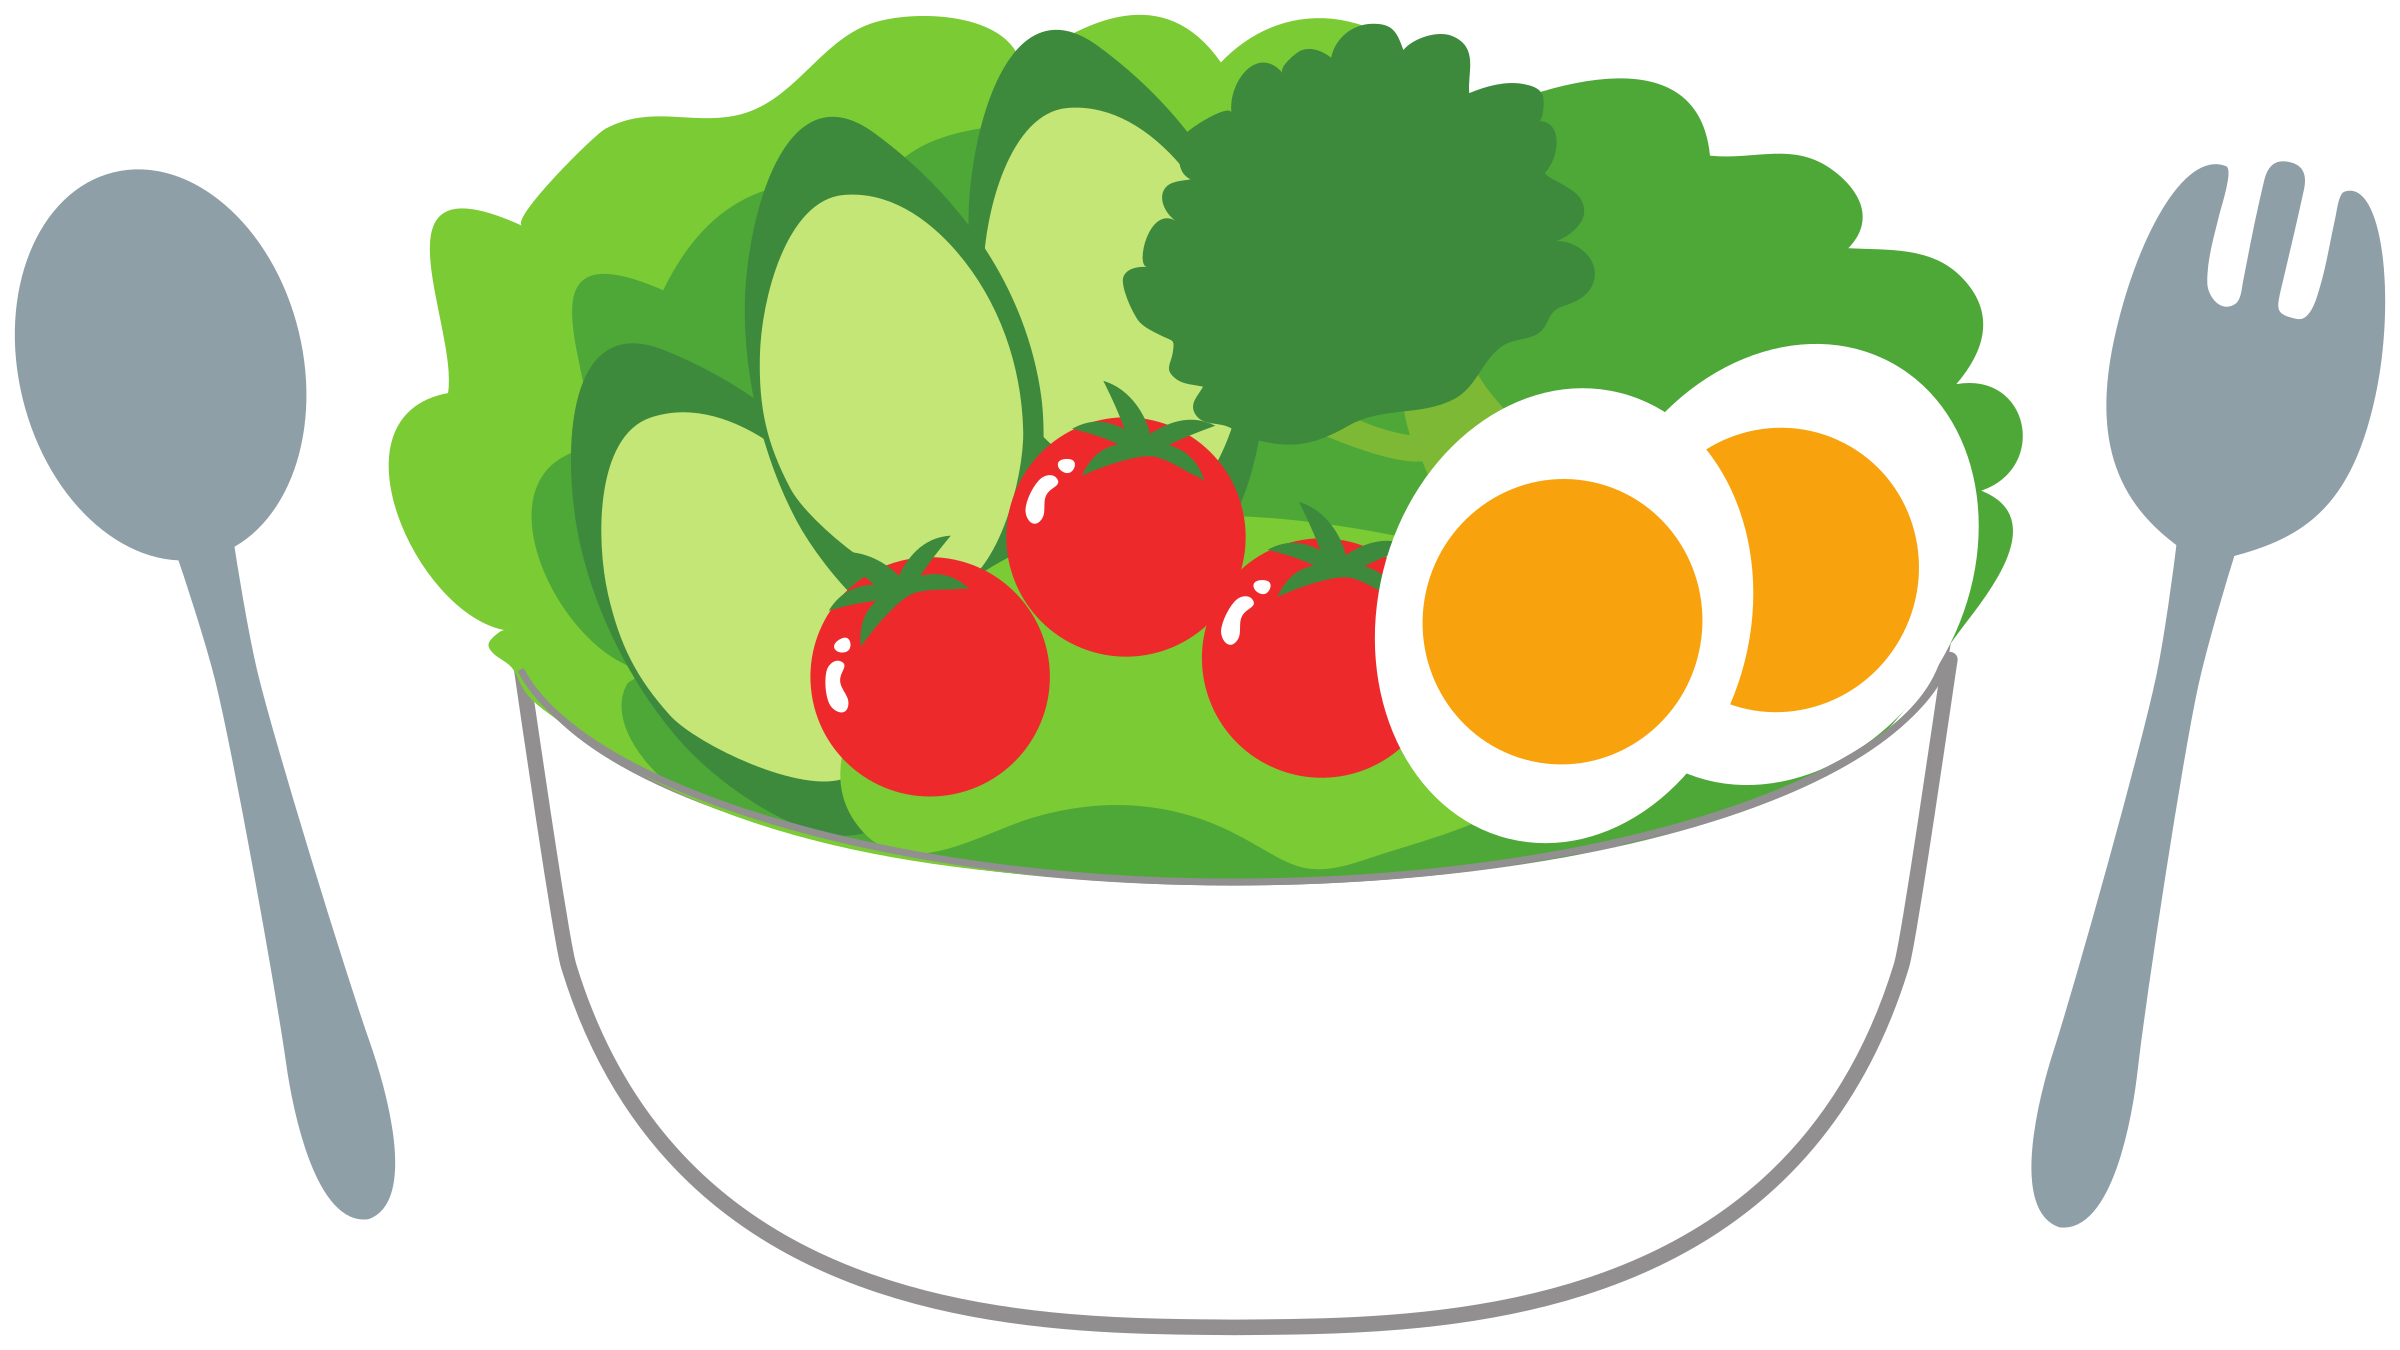 Salad with fresh tomatoes, cucumber and eggs by Juhele